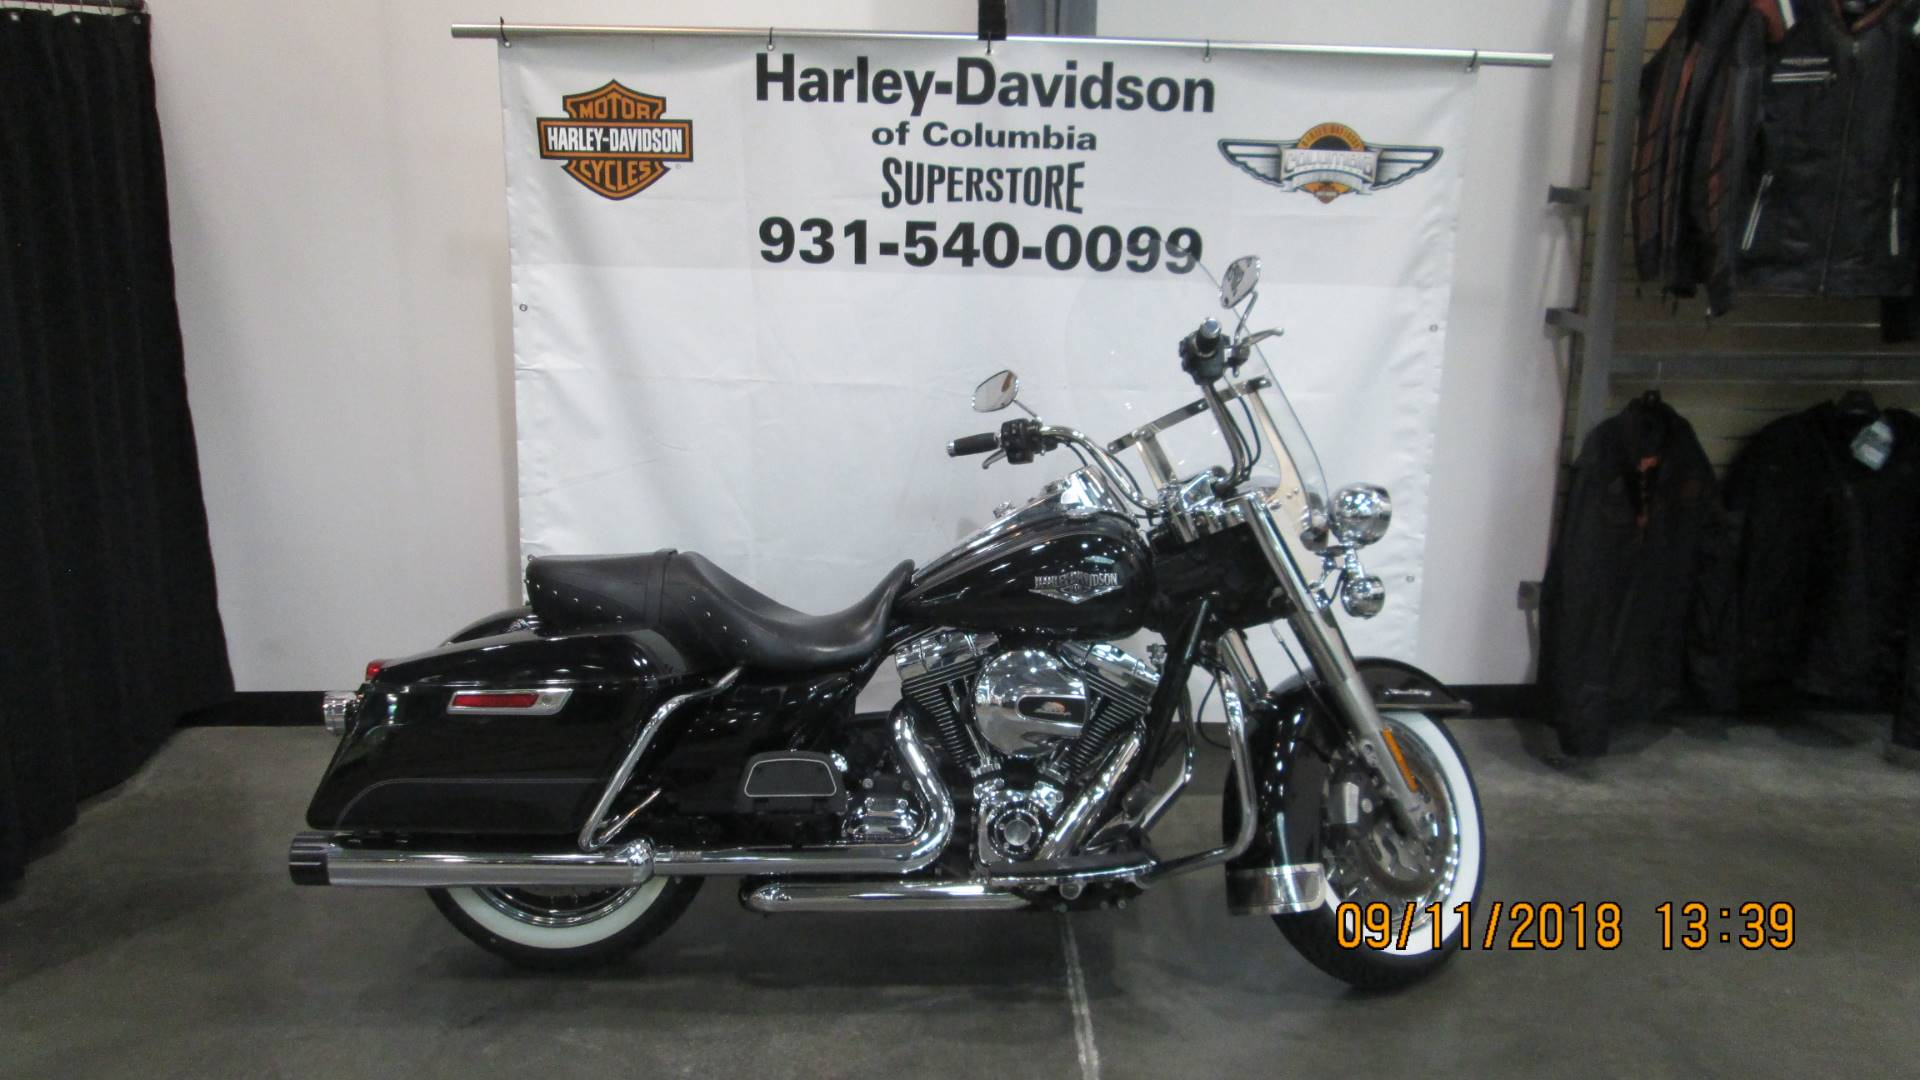 Used 2015 Harley Davidson Road King Motorcycles In Columbia Tn Tour Pack Tennessee